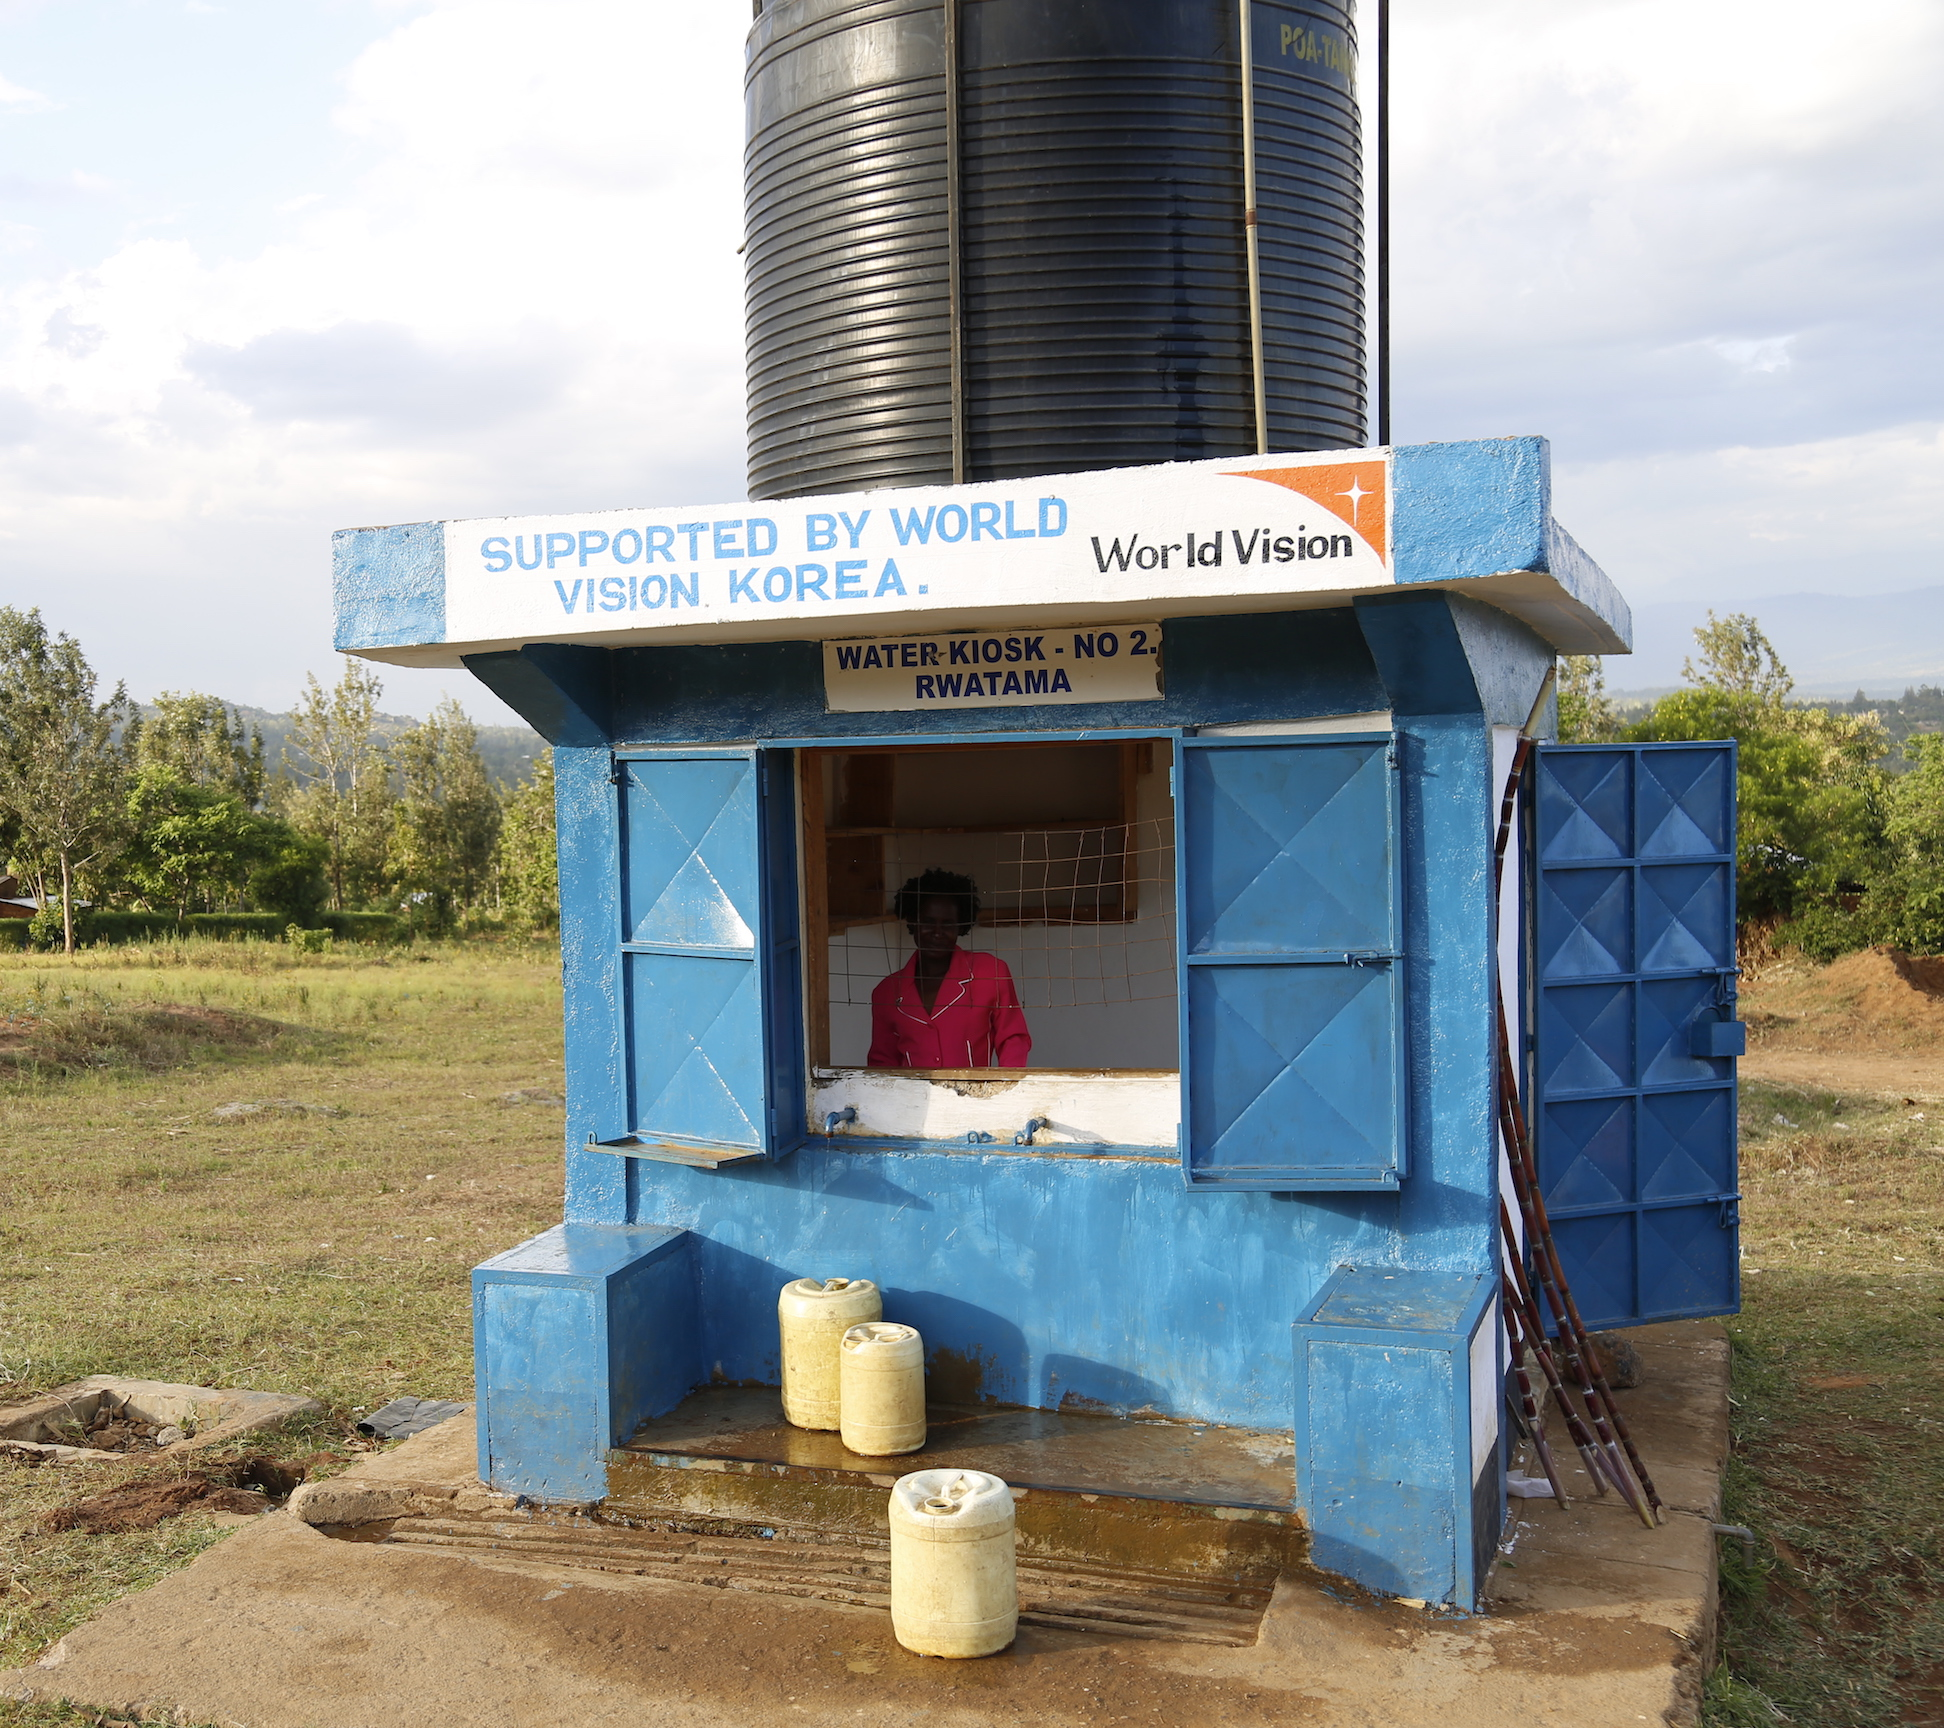 Mary at the water kiosk built by World Vision in Angurai, Western Kenya. © World Vision/Photo by Susan Otieno